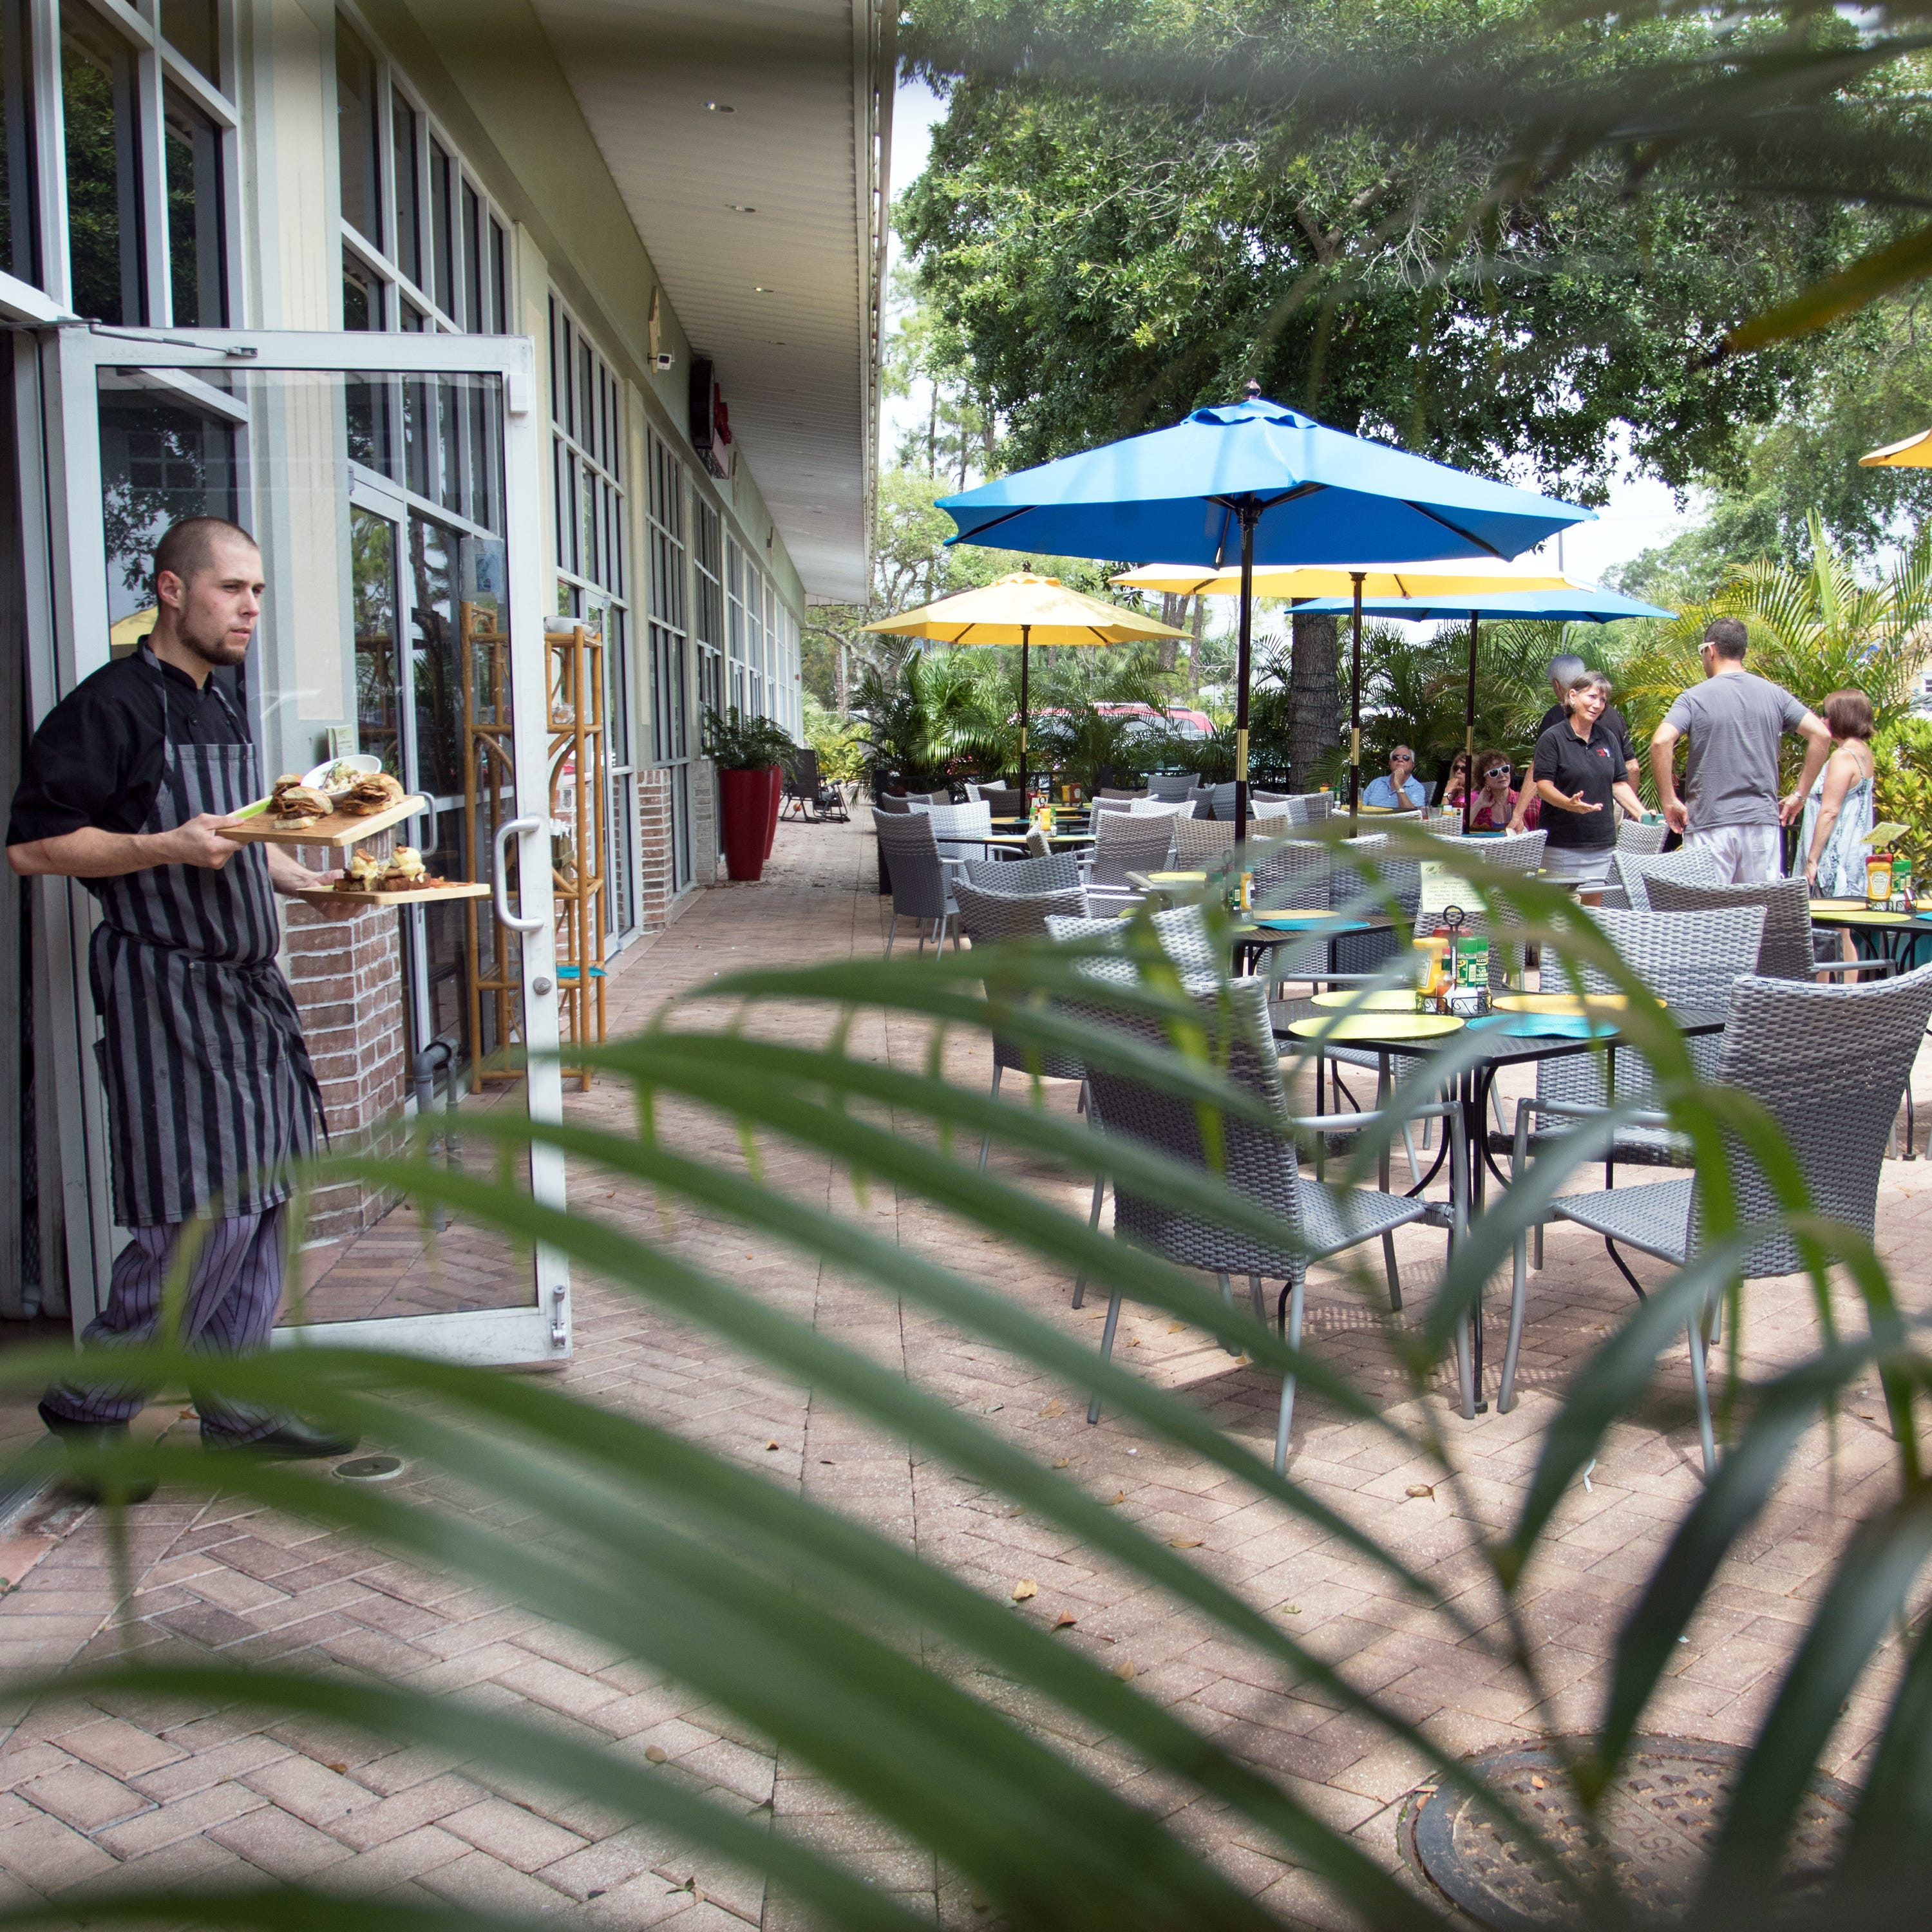 In the Know: 3 restaurants close in Bonita Springs